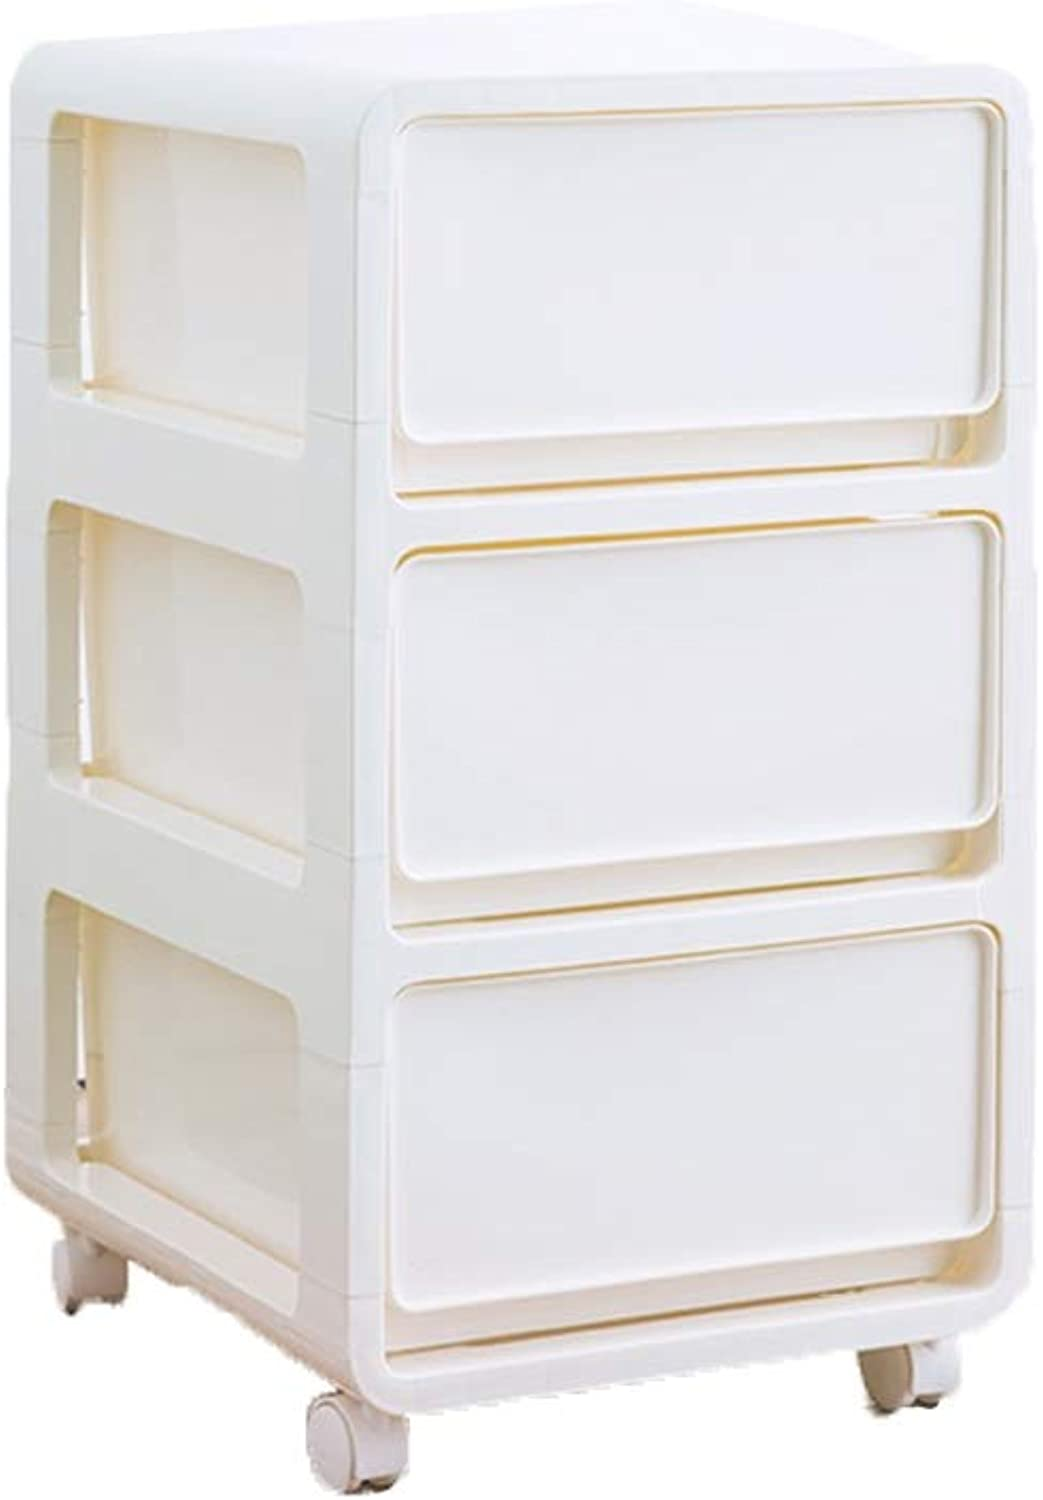 ZHAOYONGLI Side Table Desk End Bedside Snack Coffee Drawer Type Plastic Crack Storage Cabinets Wheel Storage Box (color   White, Size   41.5  35  61cm)